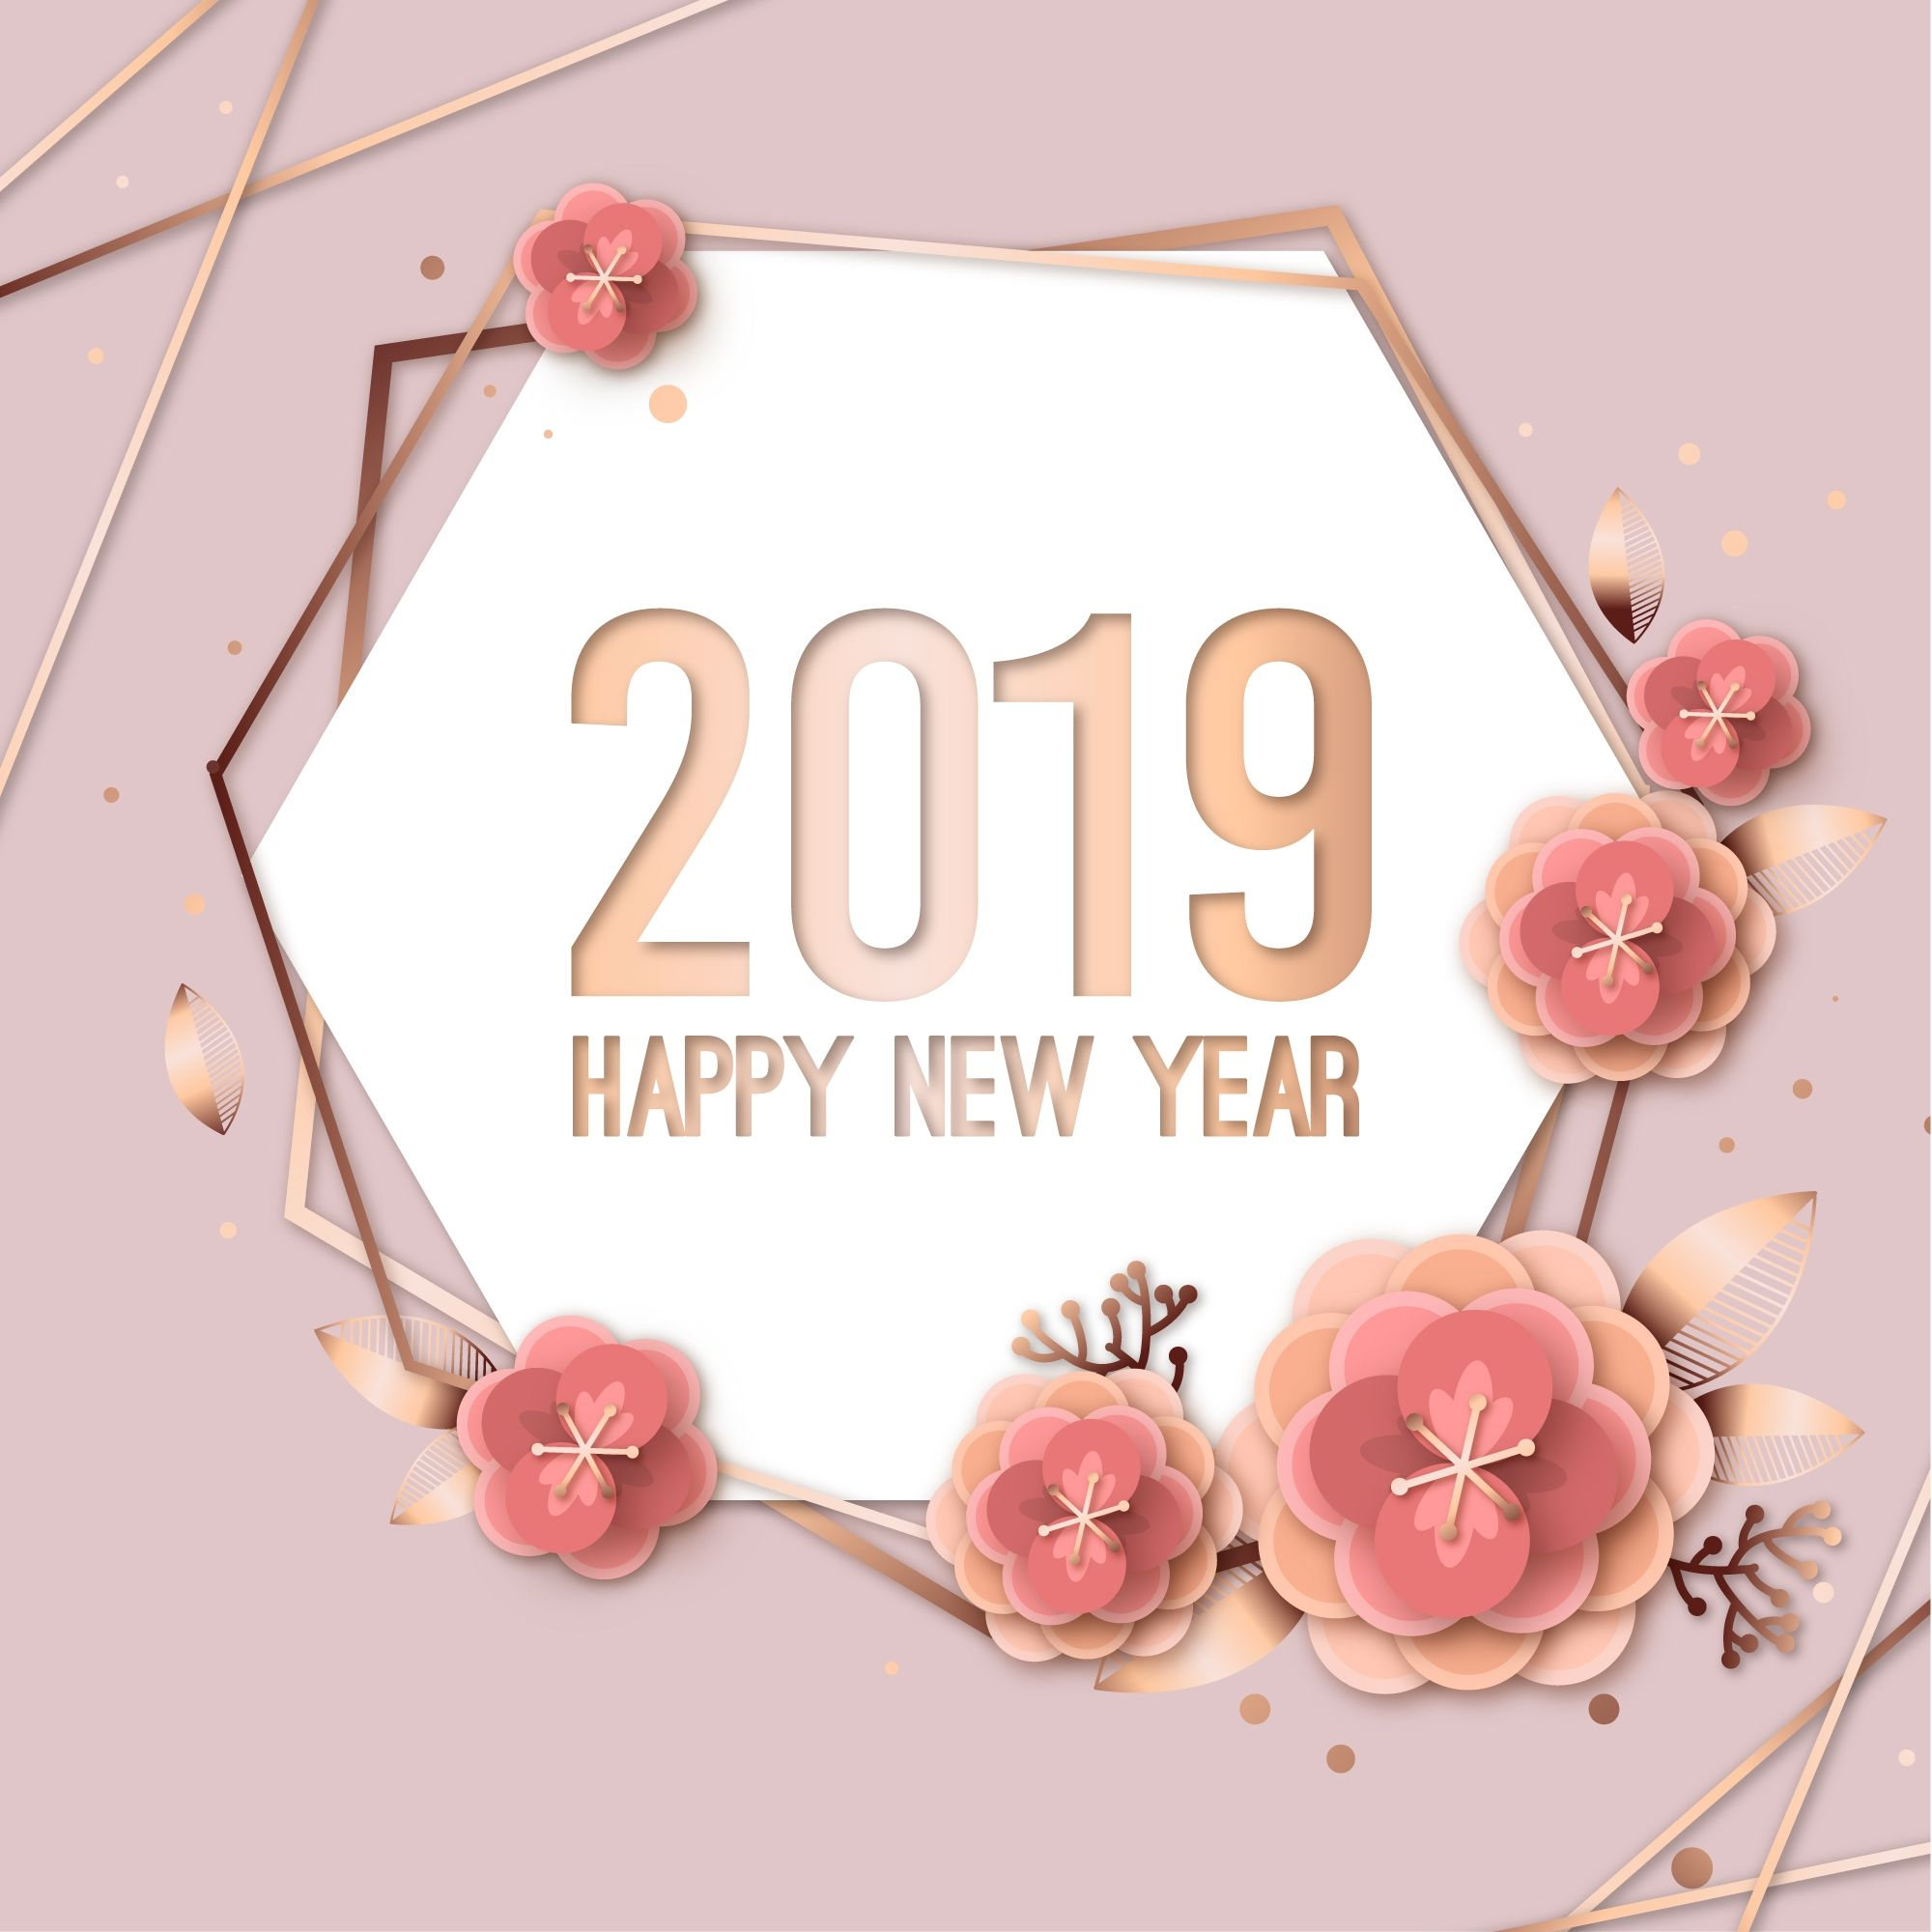 2019 Flowers Pictures, Photos, And Images For Facebook